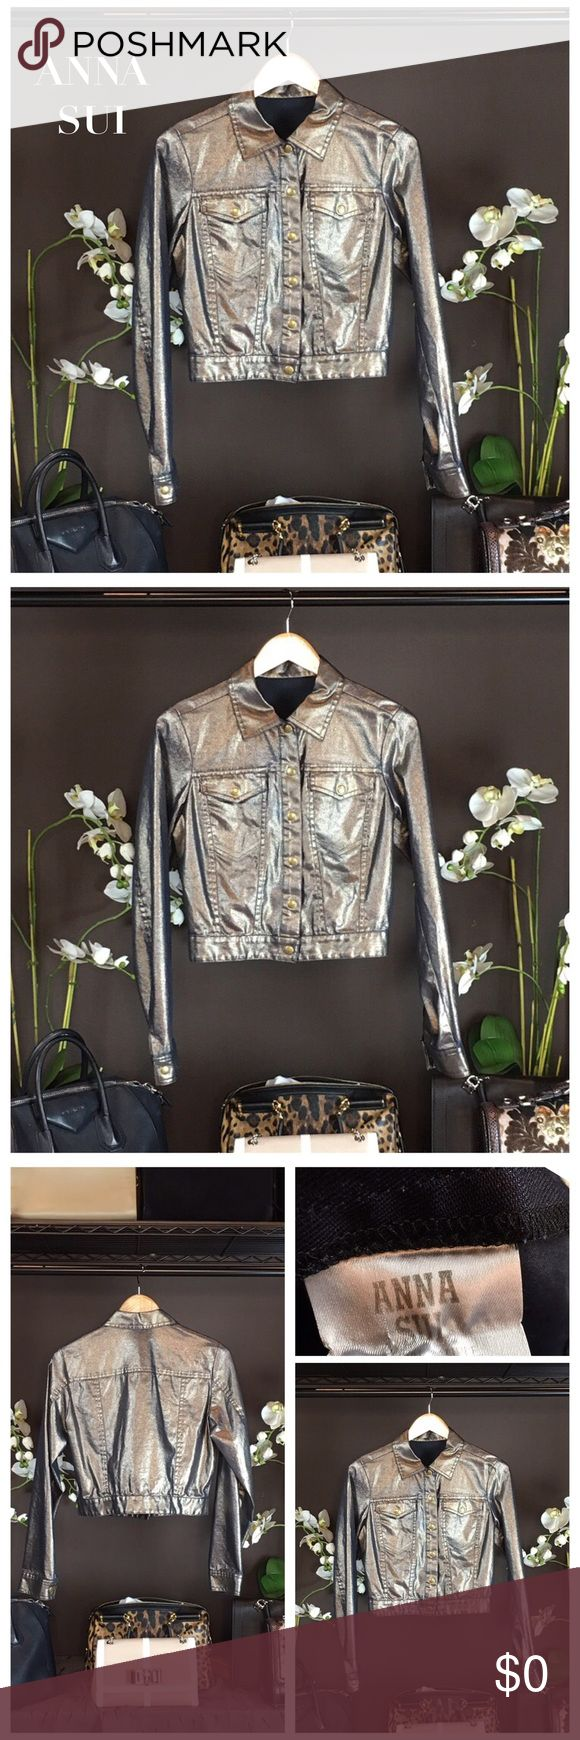 """ANNA SUI METALLIC GOLD JACKET Anna Sui jacket with pointed collar, dual flap pockets at bust and exposed button closures at center front. Color: Gold metallic iridescent Condition: Excellent. Approx Measurements: Bust 36"""", Waist 37"""", Shoulder 16"""", Length 20"""". Sold Out! Anna Sui Jackets & Coats"""